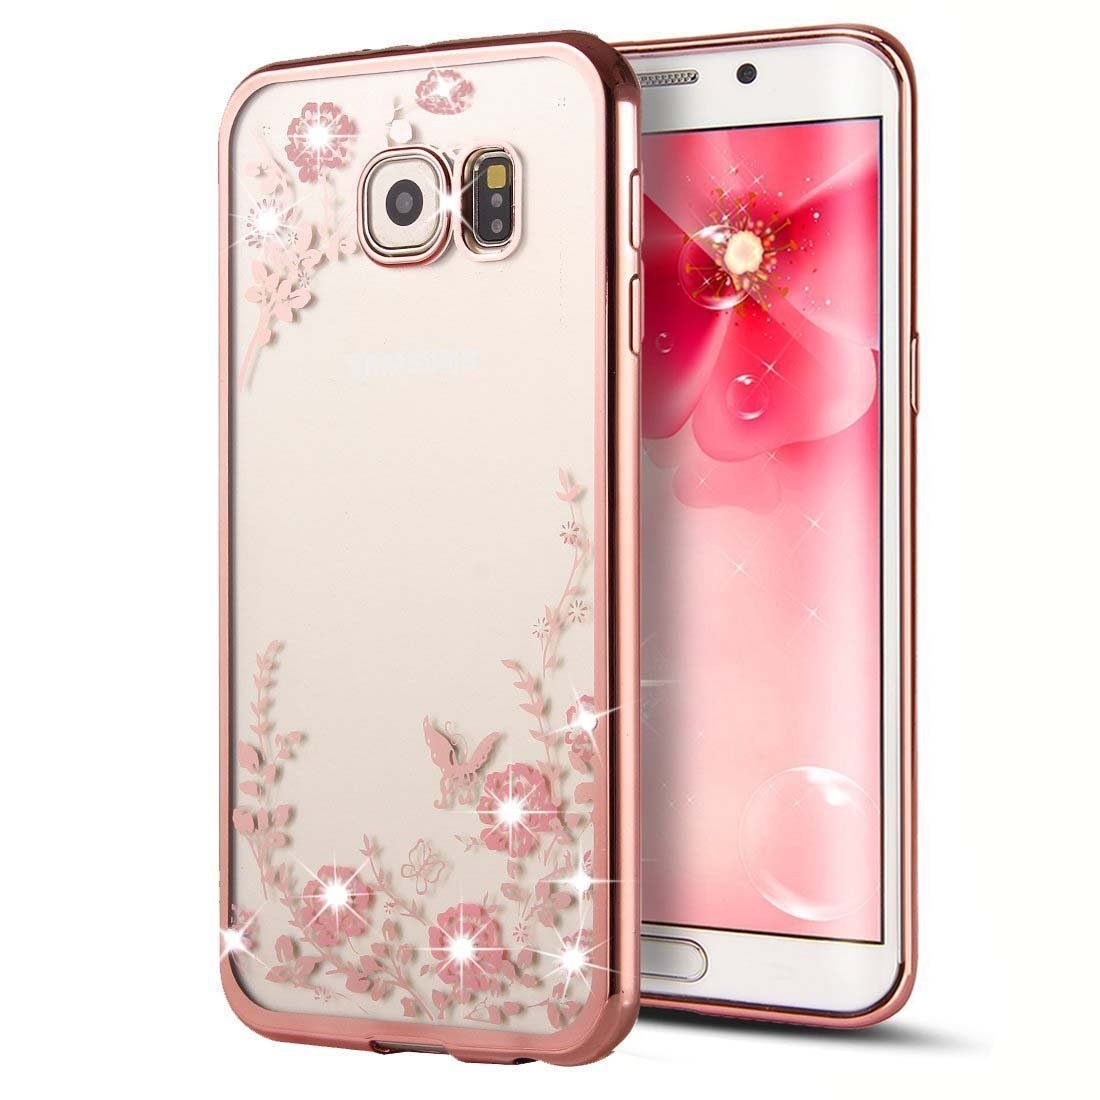 buy popular 04ff5 9048d Samsung Galaxy S7 Edge Case,Inspirationc [Secret Garden] Rose Gold and Pink  TPU Plating Clear Shiny Cover Series for Samsung Galaxy S7 Edge--Swarovski